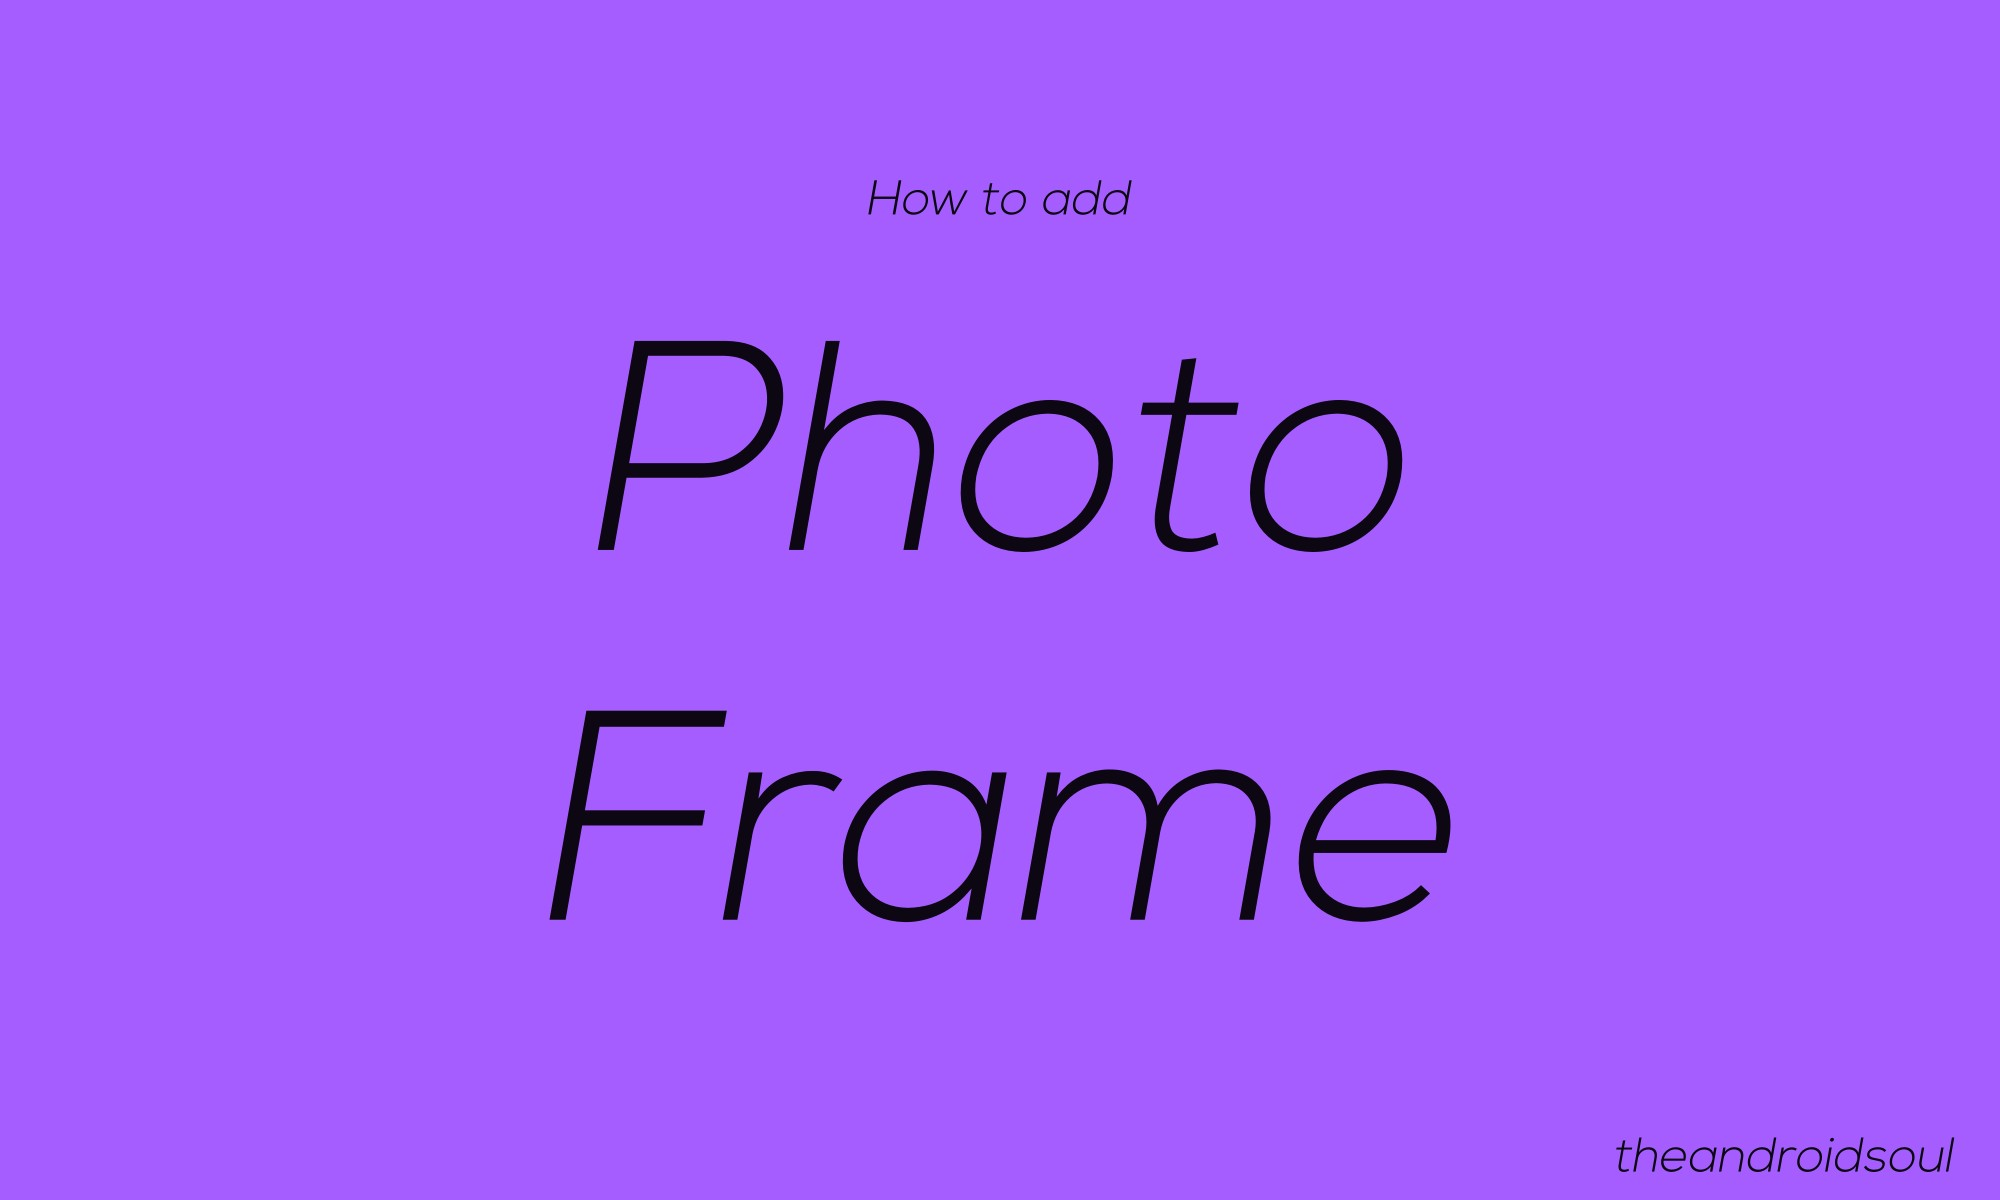 how to add photo frame